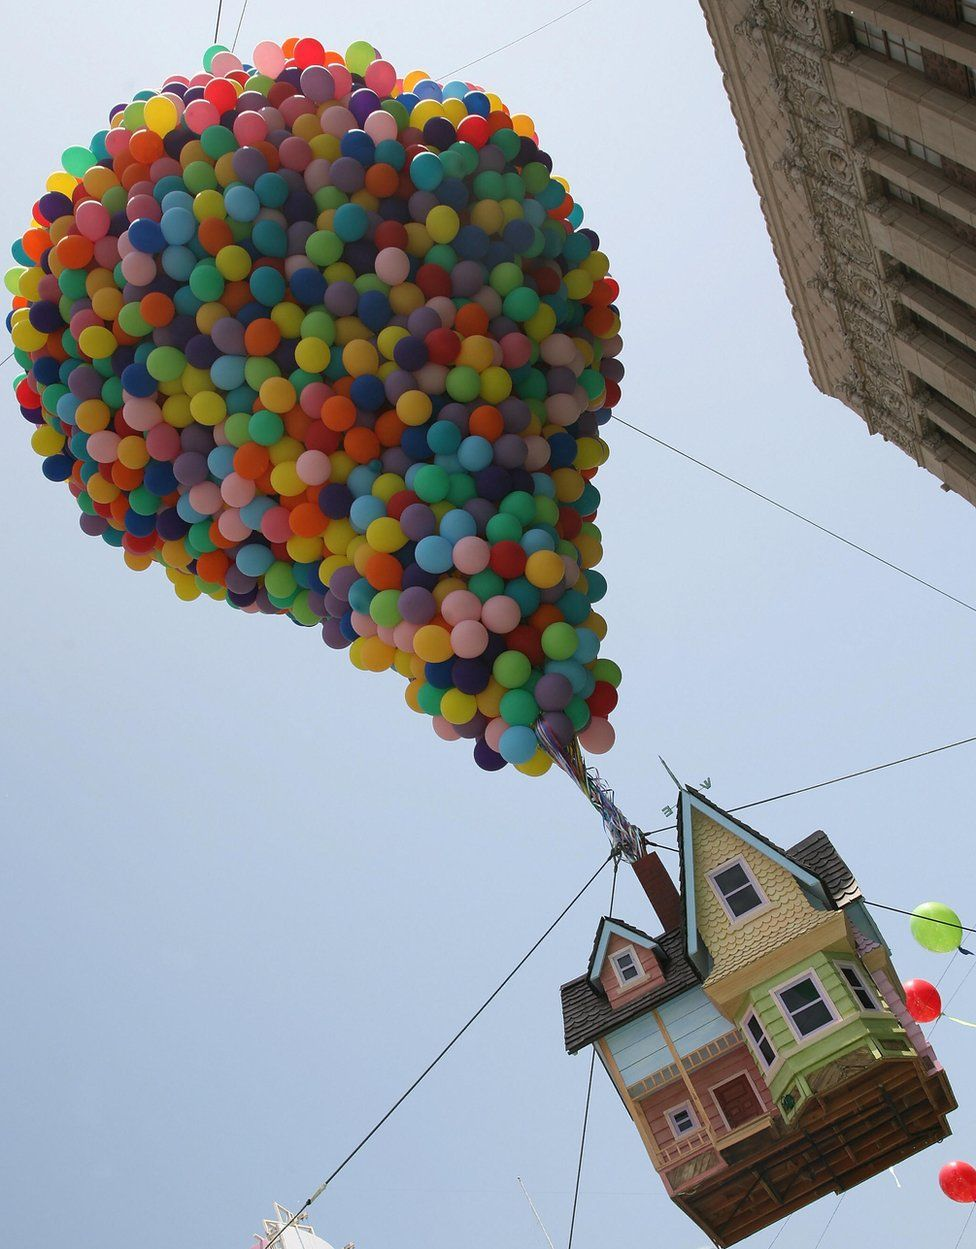 A real-life model of the house from Up, seen at the film's premier